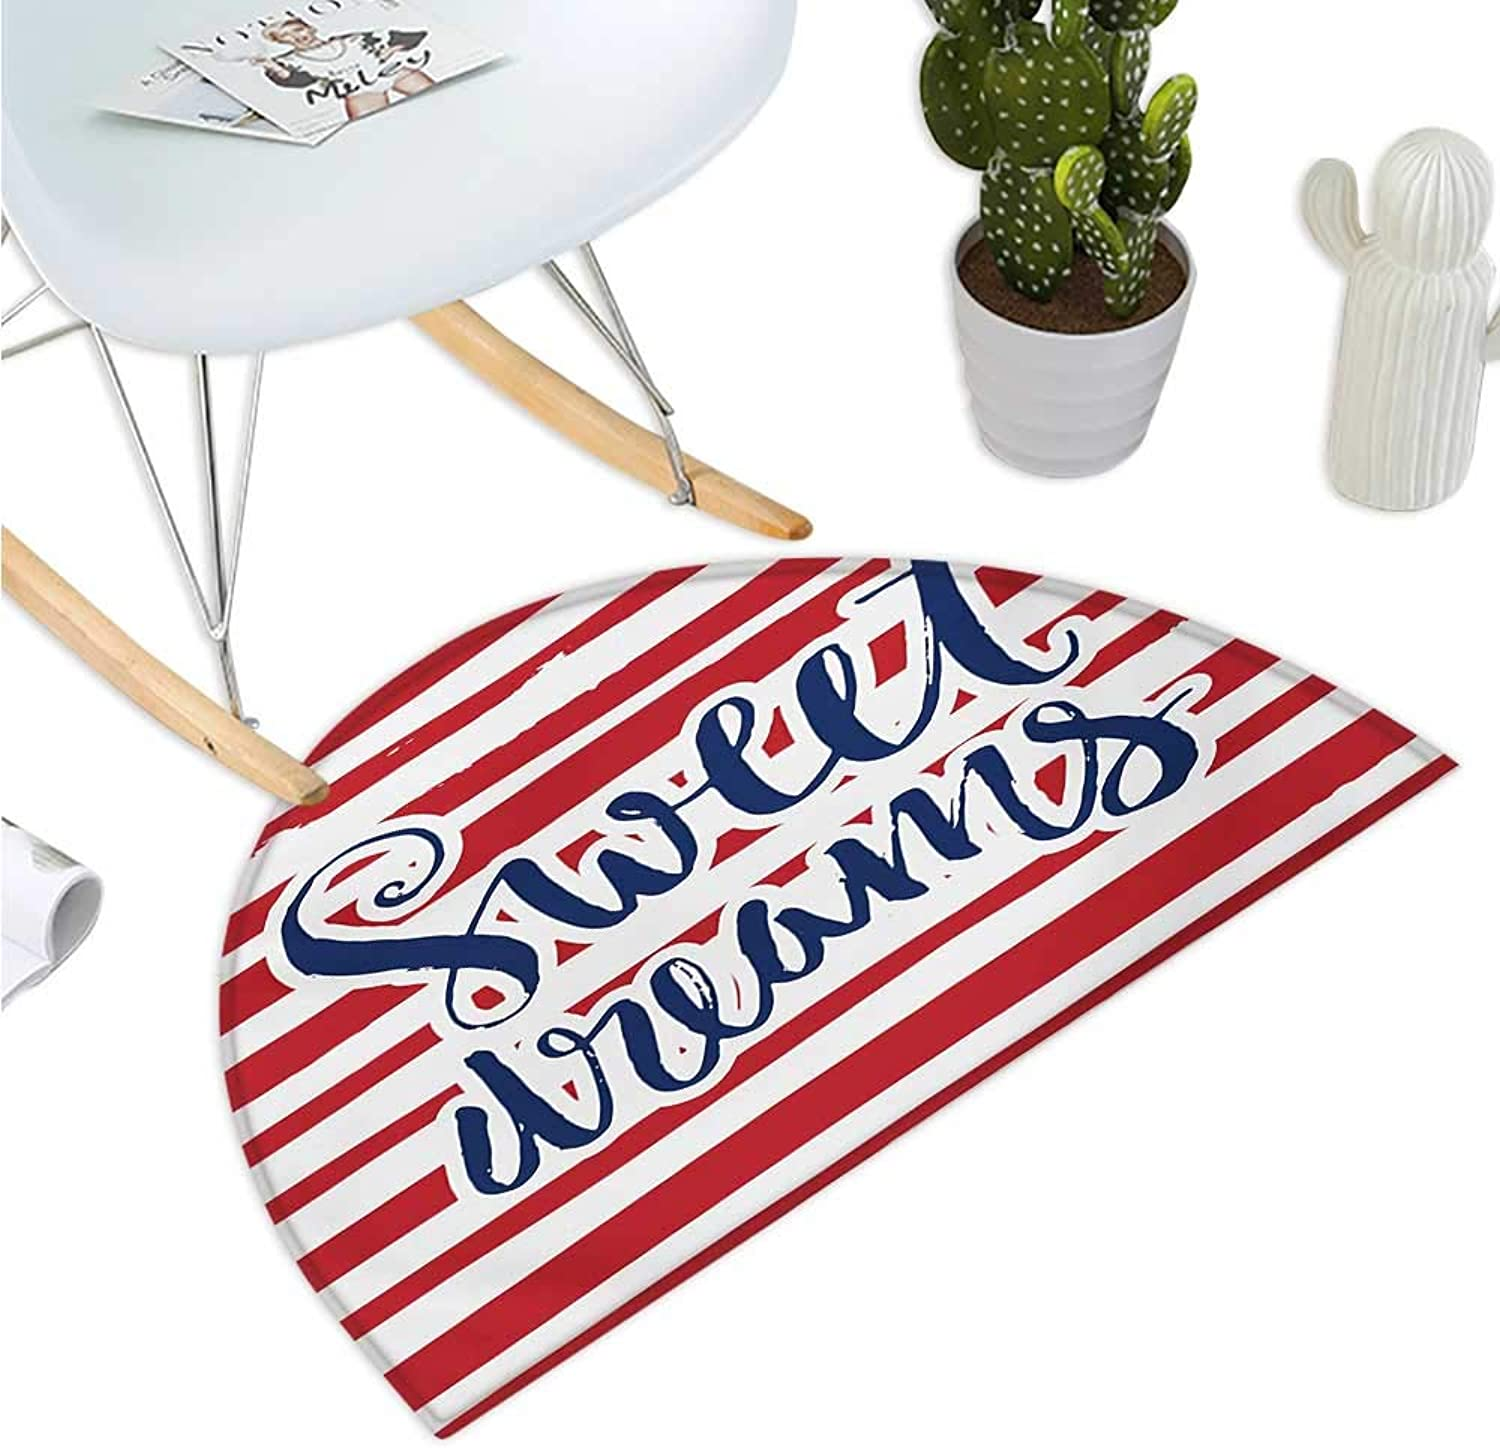 Sweet Dreams Half Round Door mats Vintage Striped Background with Positive Message Nautical Design Bathroom Mat H 35.4  xD 53.1  Red Navy bluee and White